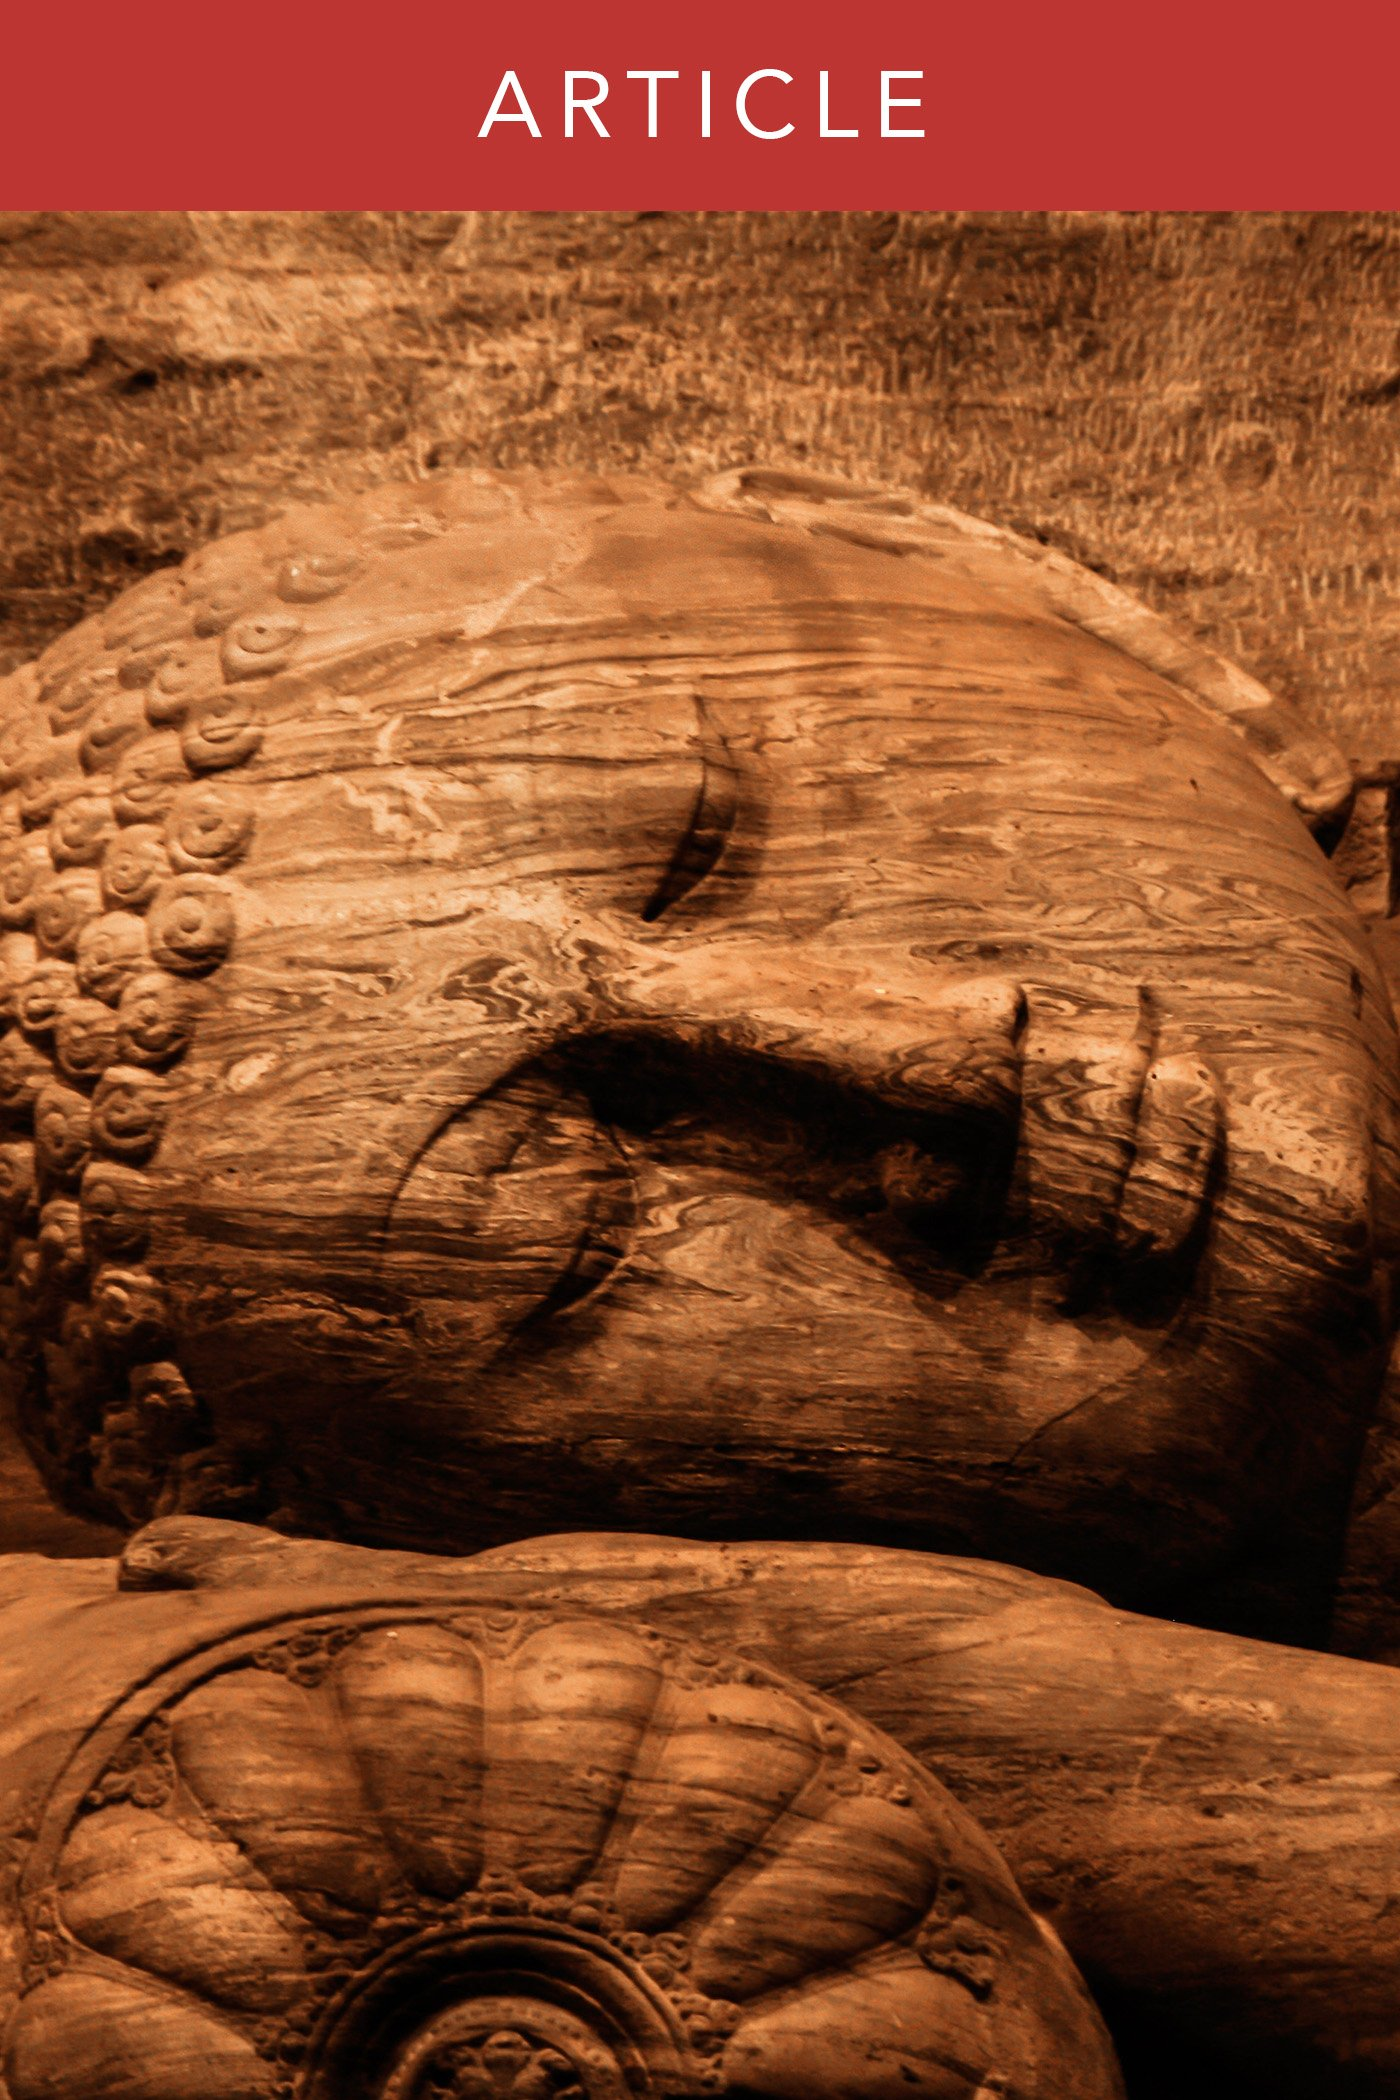 The Buddha on Old Age, Illness, and Death